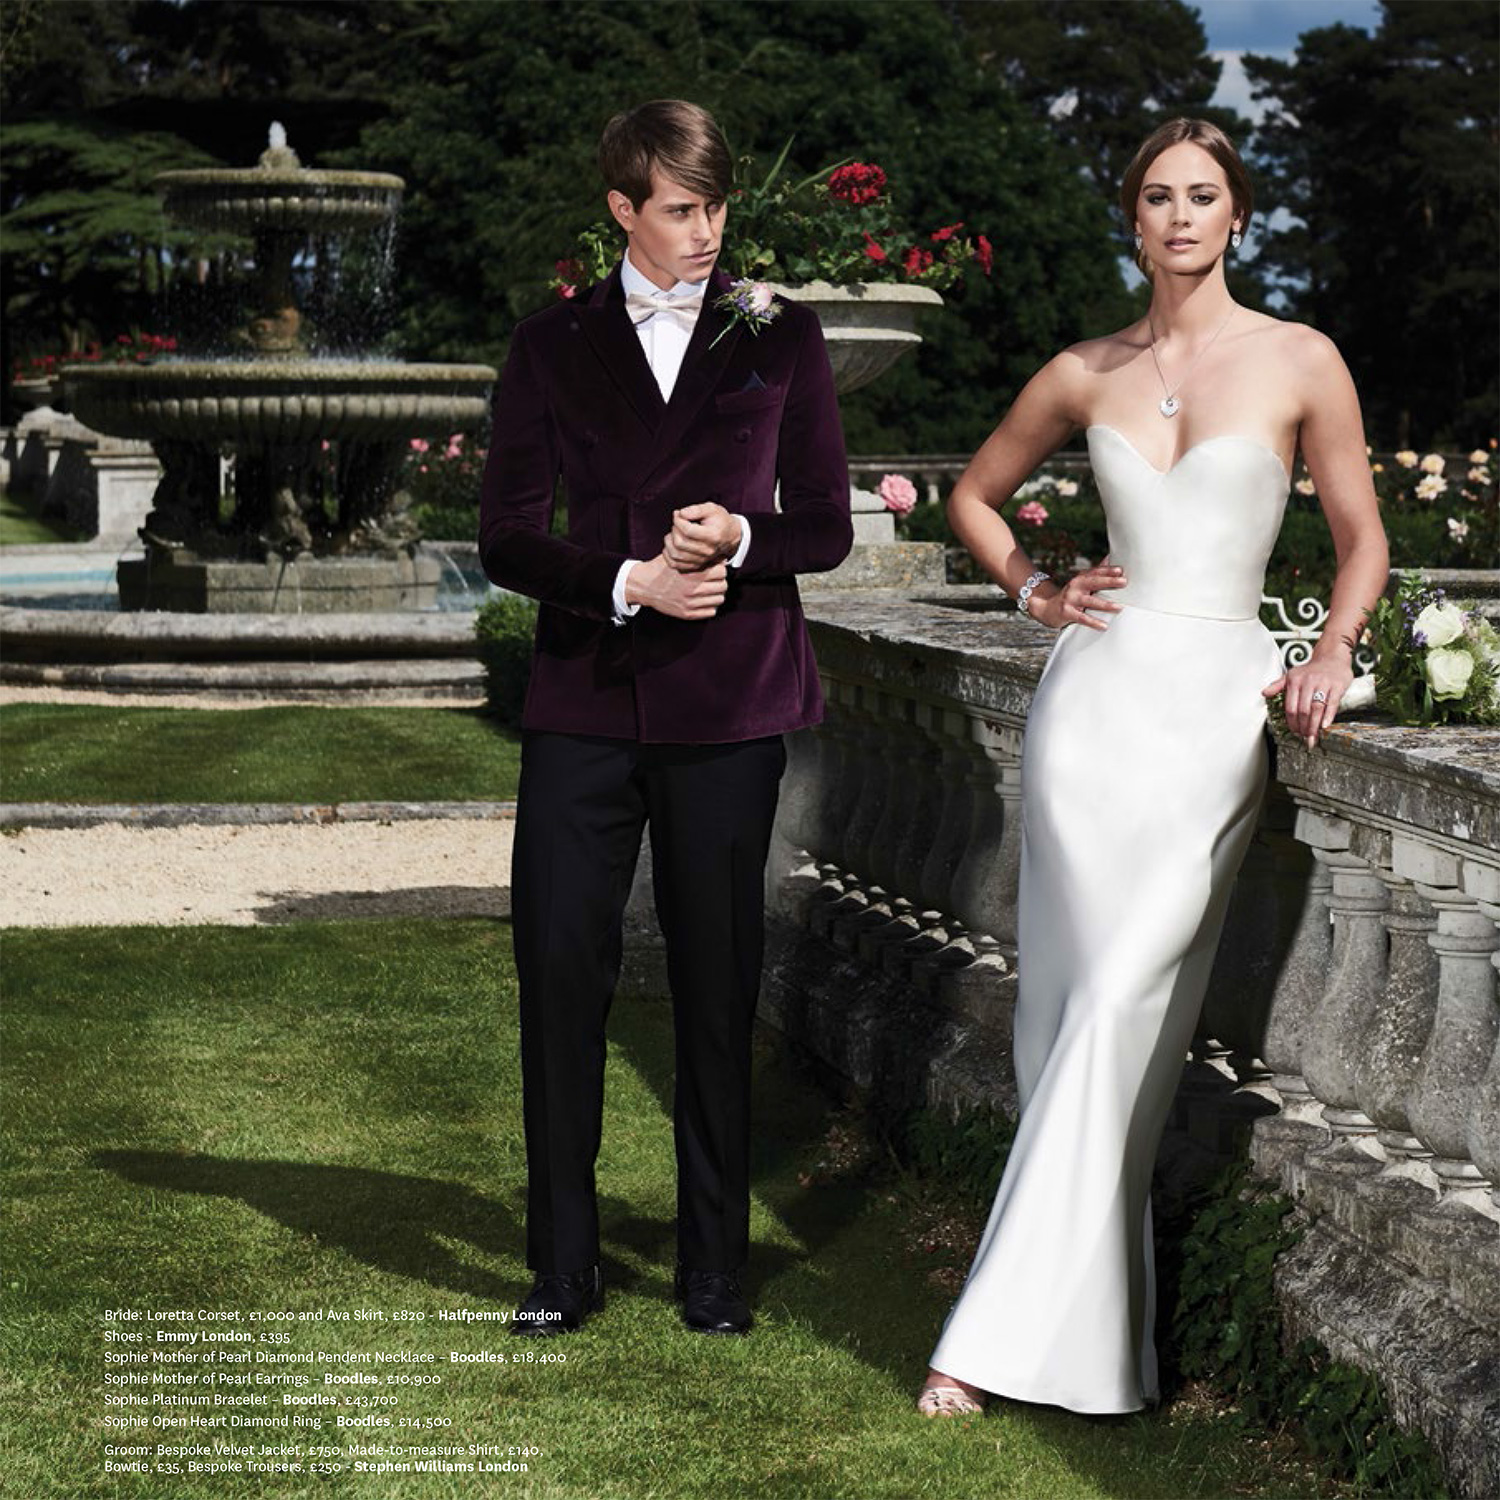 Stephen Williams London - Stoke Park Magazine